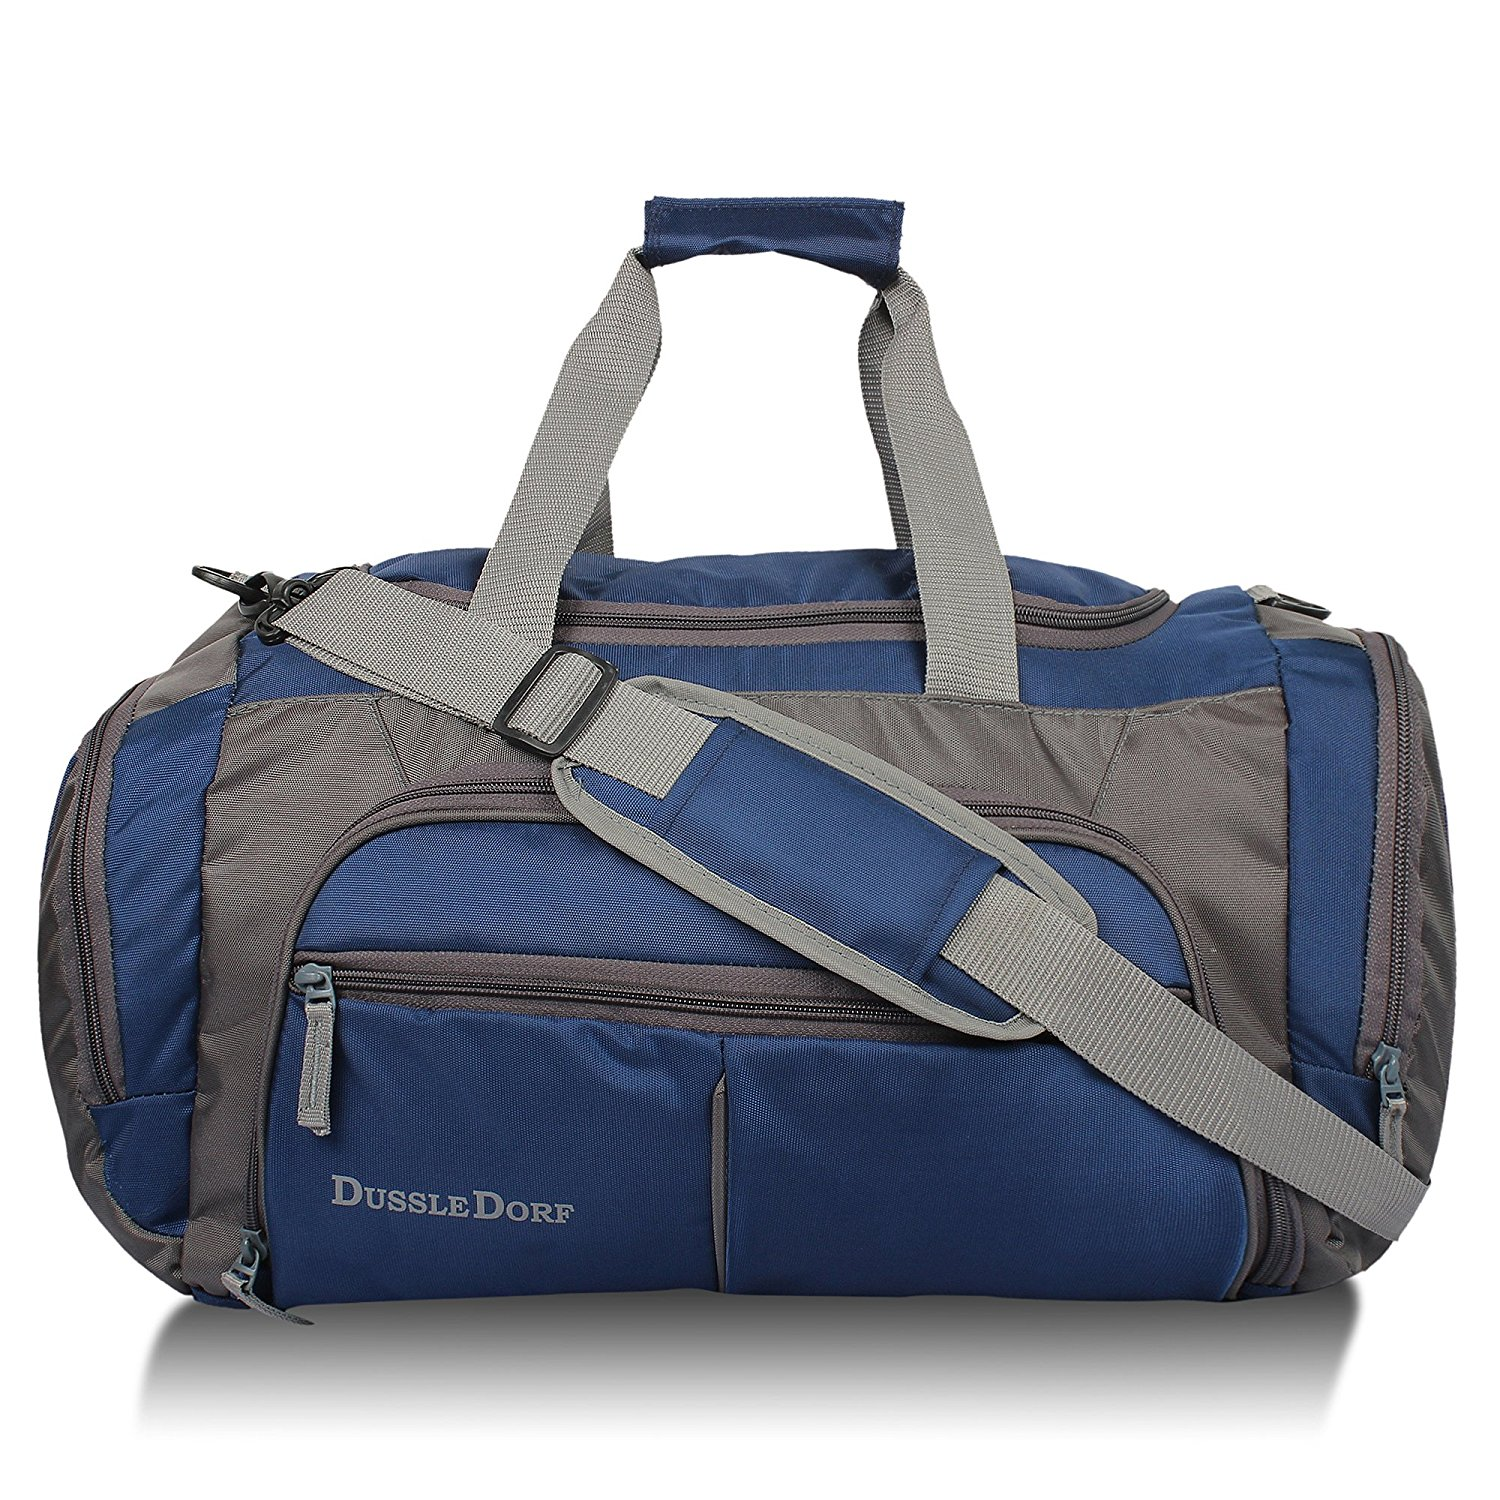 Dussle Dorf Polyester 45 liters Navy Blue and Grey Travel Duffle Bag by DUSSLE DORF